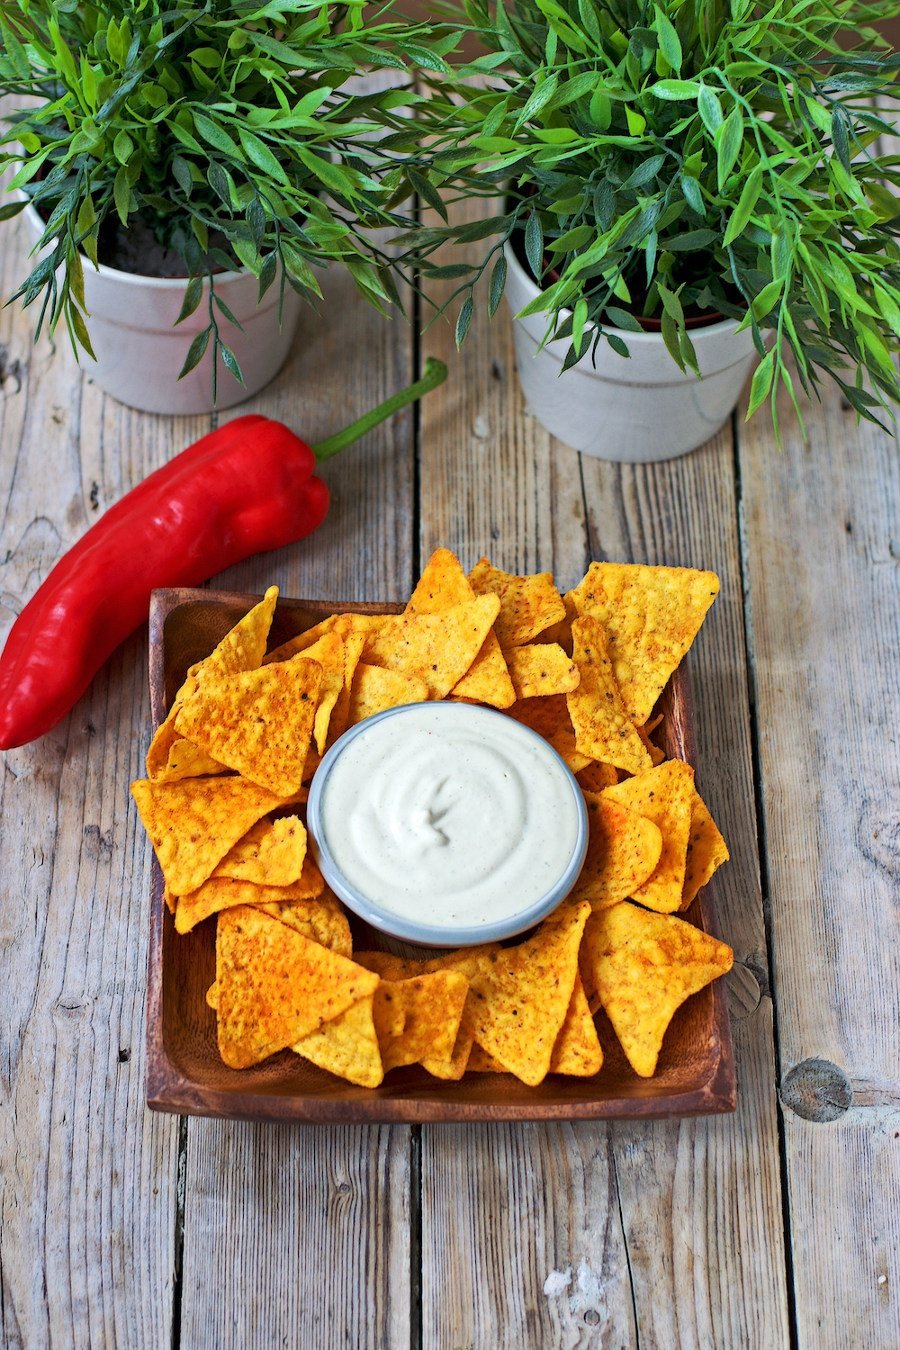 Vegan Cheese Sauce with tortilla chips.